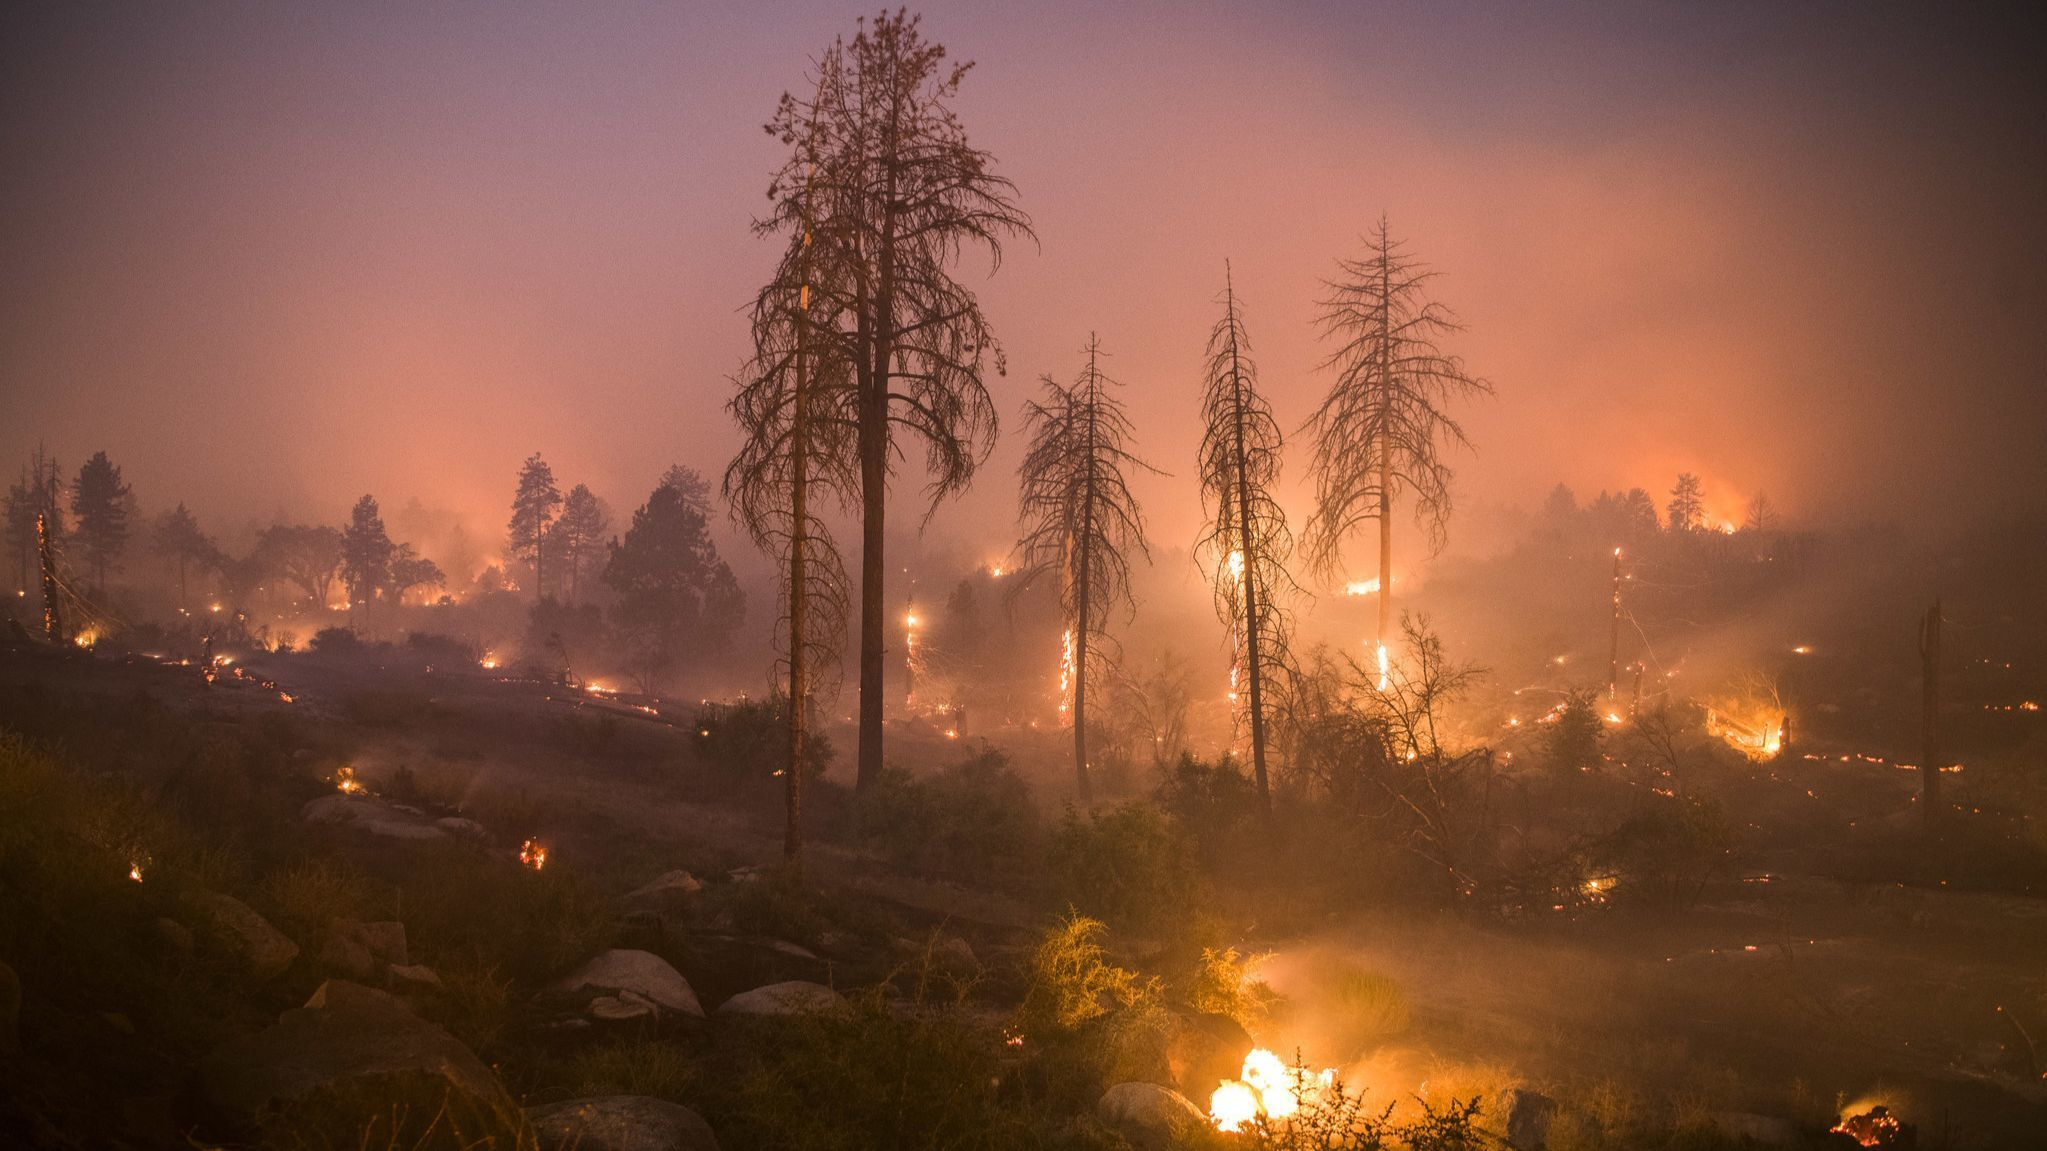 5 homes destroyed in suspected arson near Idyllwild; thousands ordered to evacuate